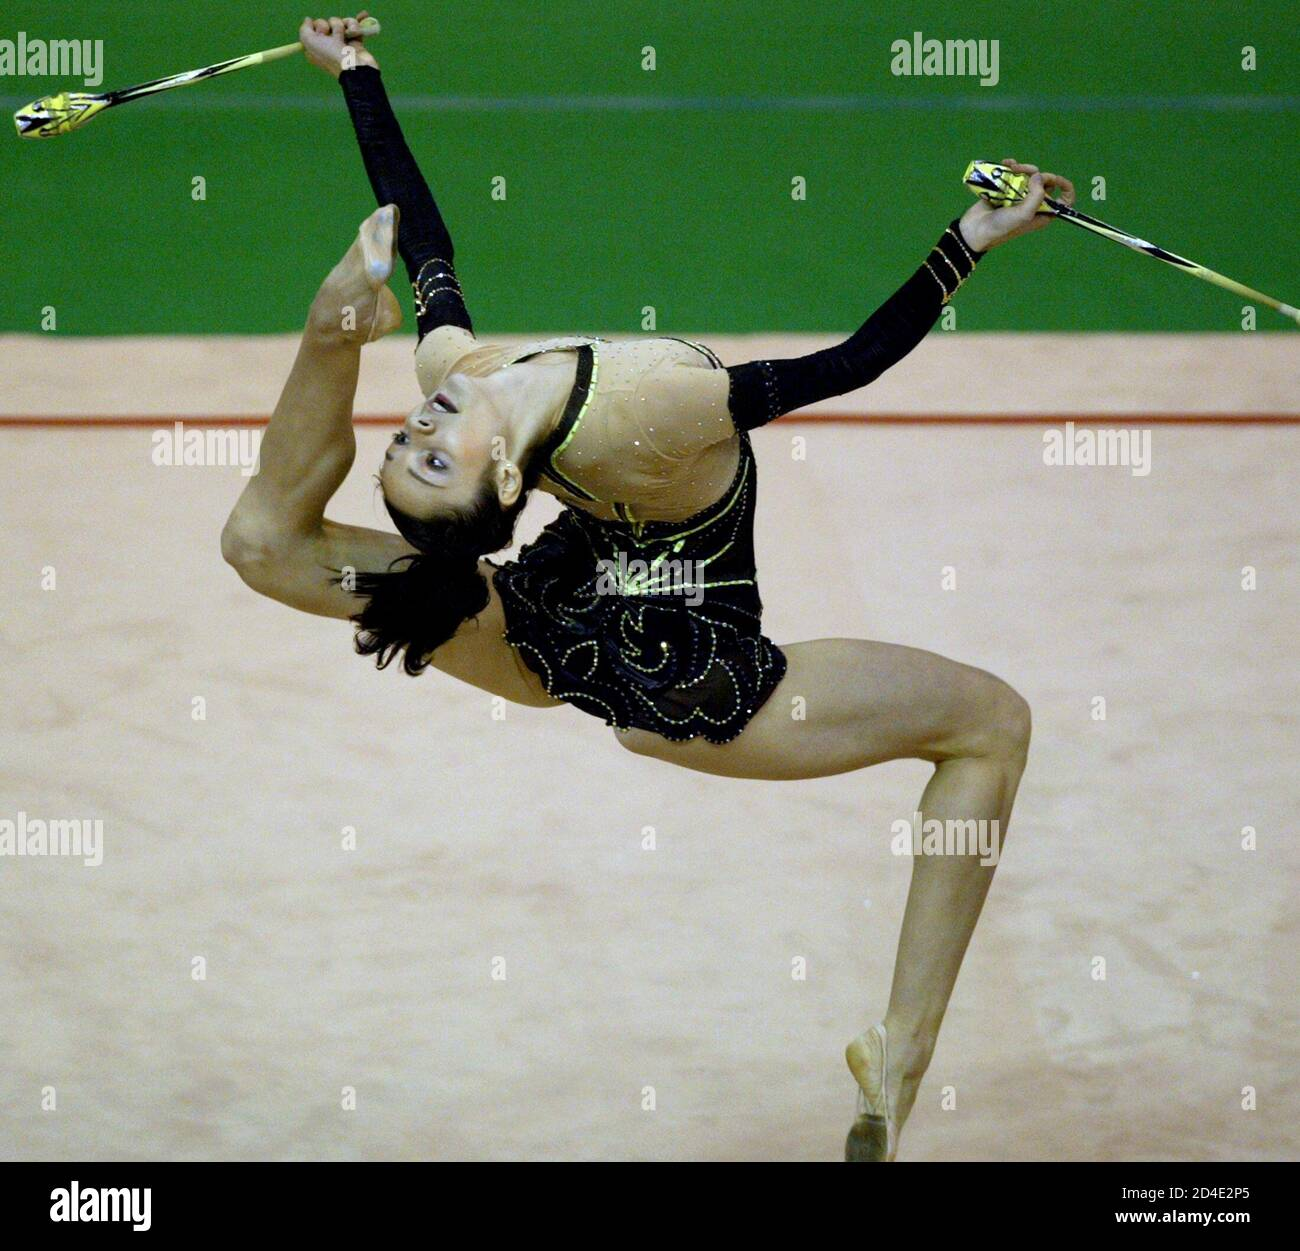 Anna Bezsonova from the Ukraine performs with clubs during the individual finals of the rythmic gymnastics at the 22nd Summer Universiade Games in Kyeongju August 25, 2003. Bezsonova won the silver medal with the score of 28.175. REUTERS/Kim Kyung-Hoon  KKH/RCS Stock Photo